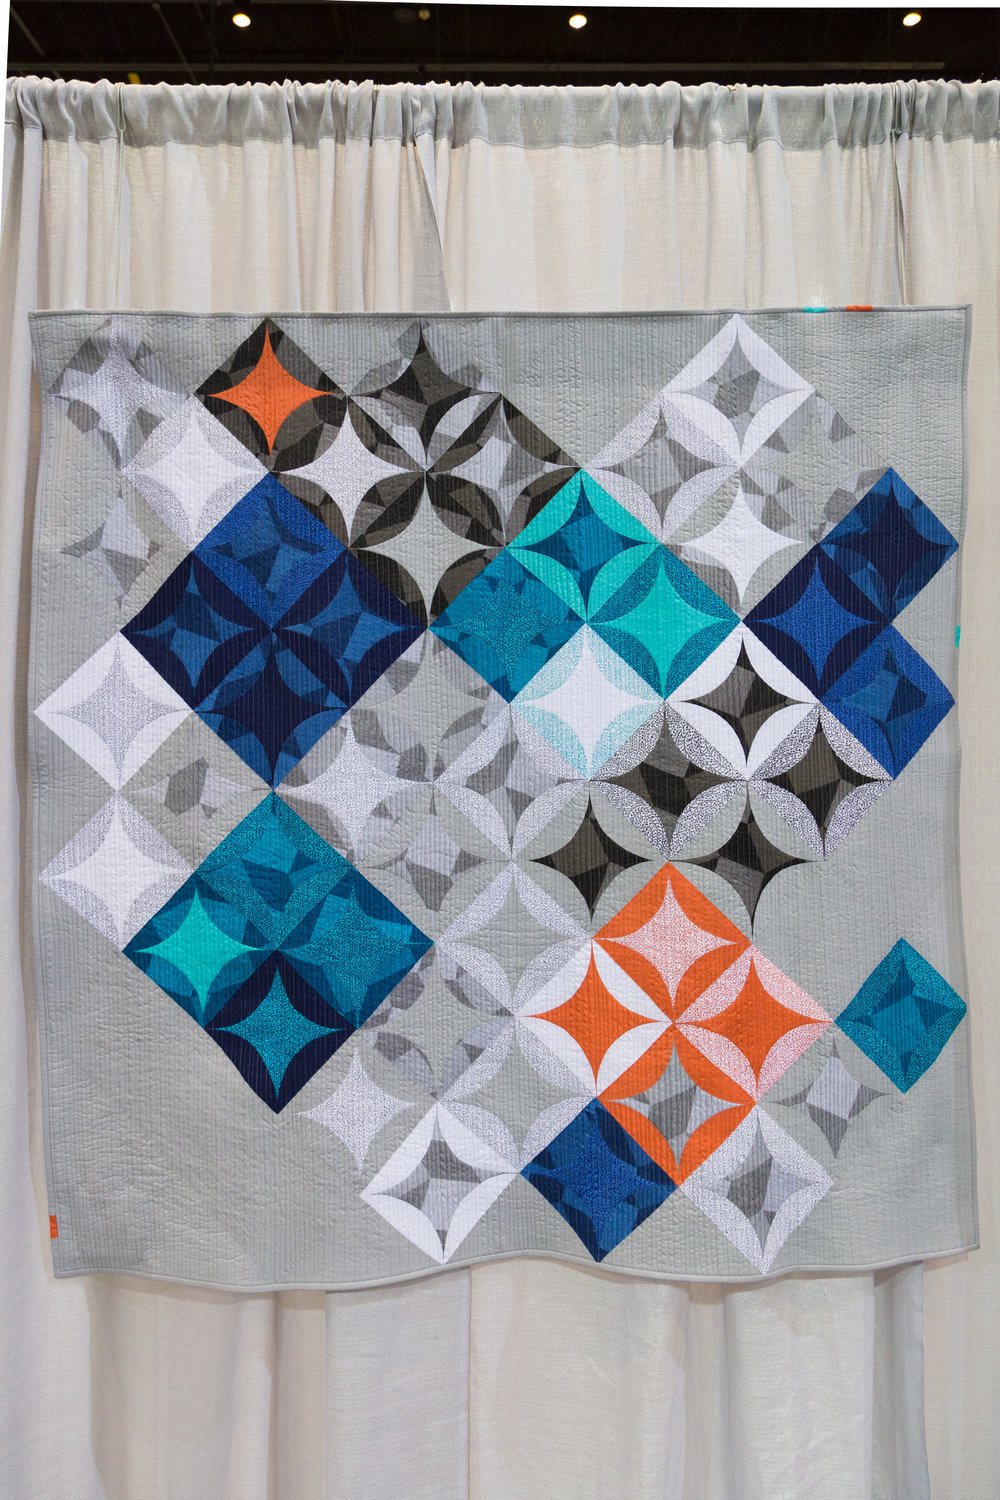 """1st Place: Luxe Modern  59"""" x 62"""" Pieced and quilted by Susan Clay Santa Fe, New Mexico, United States Individual MQG Member"""